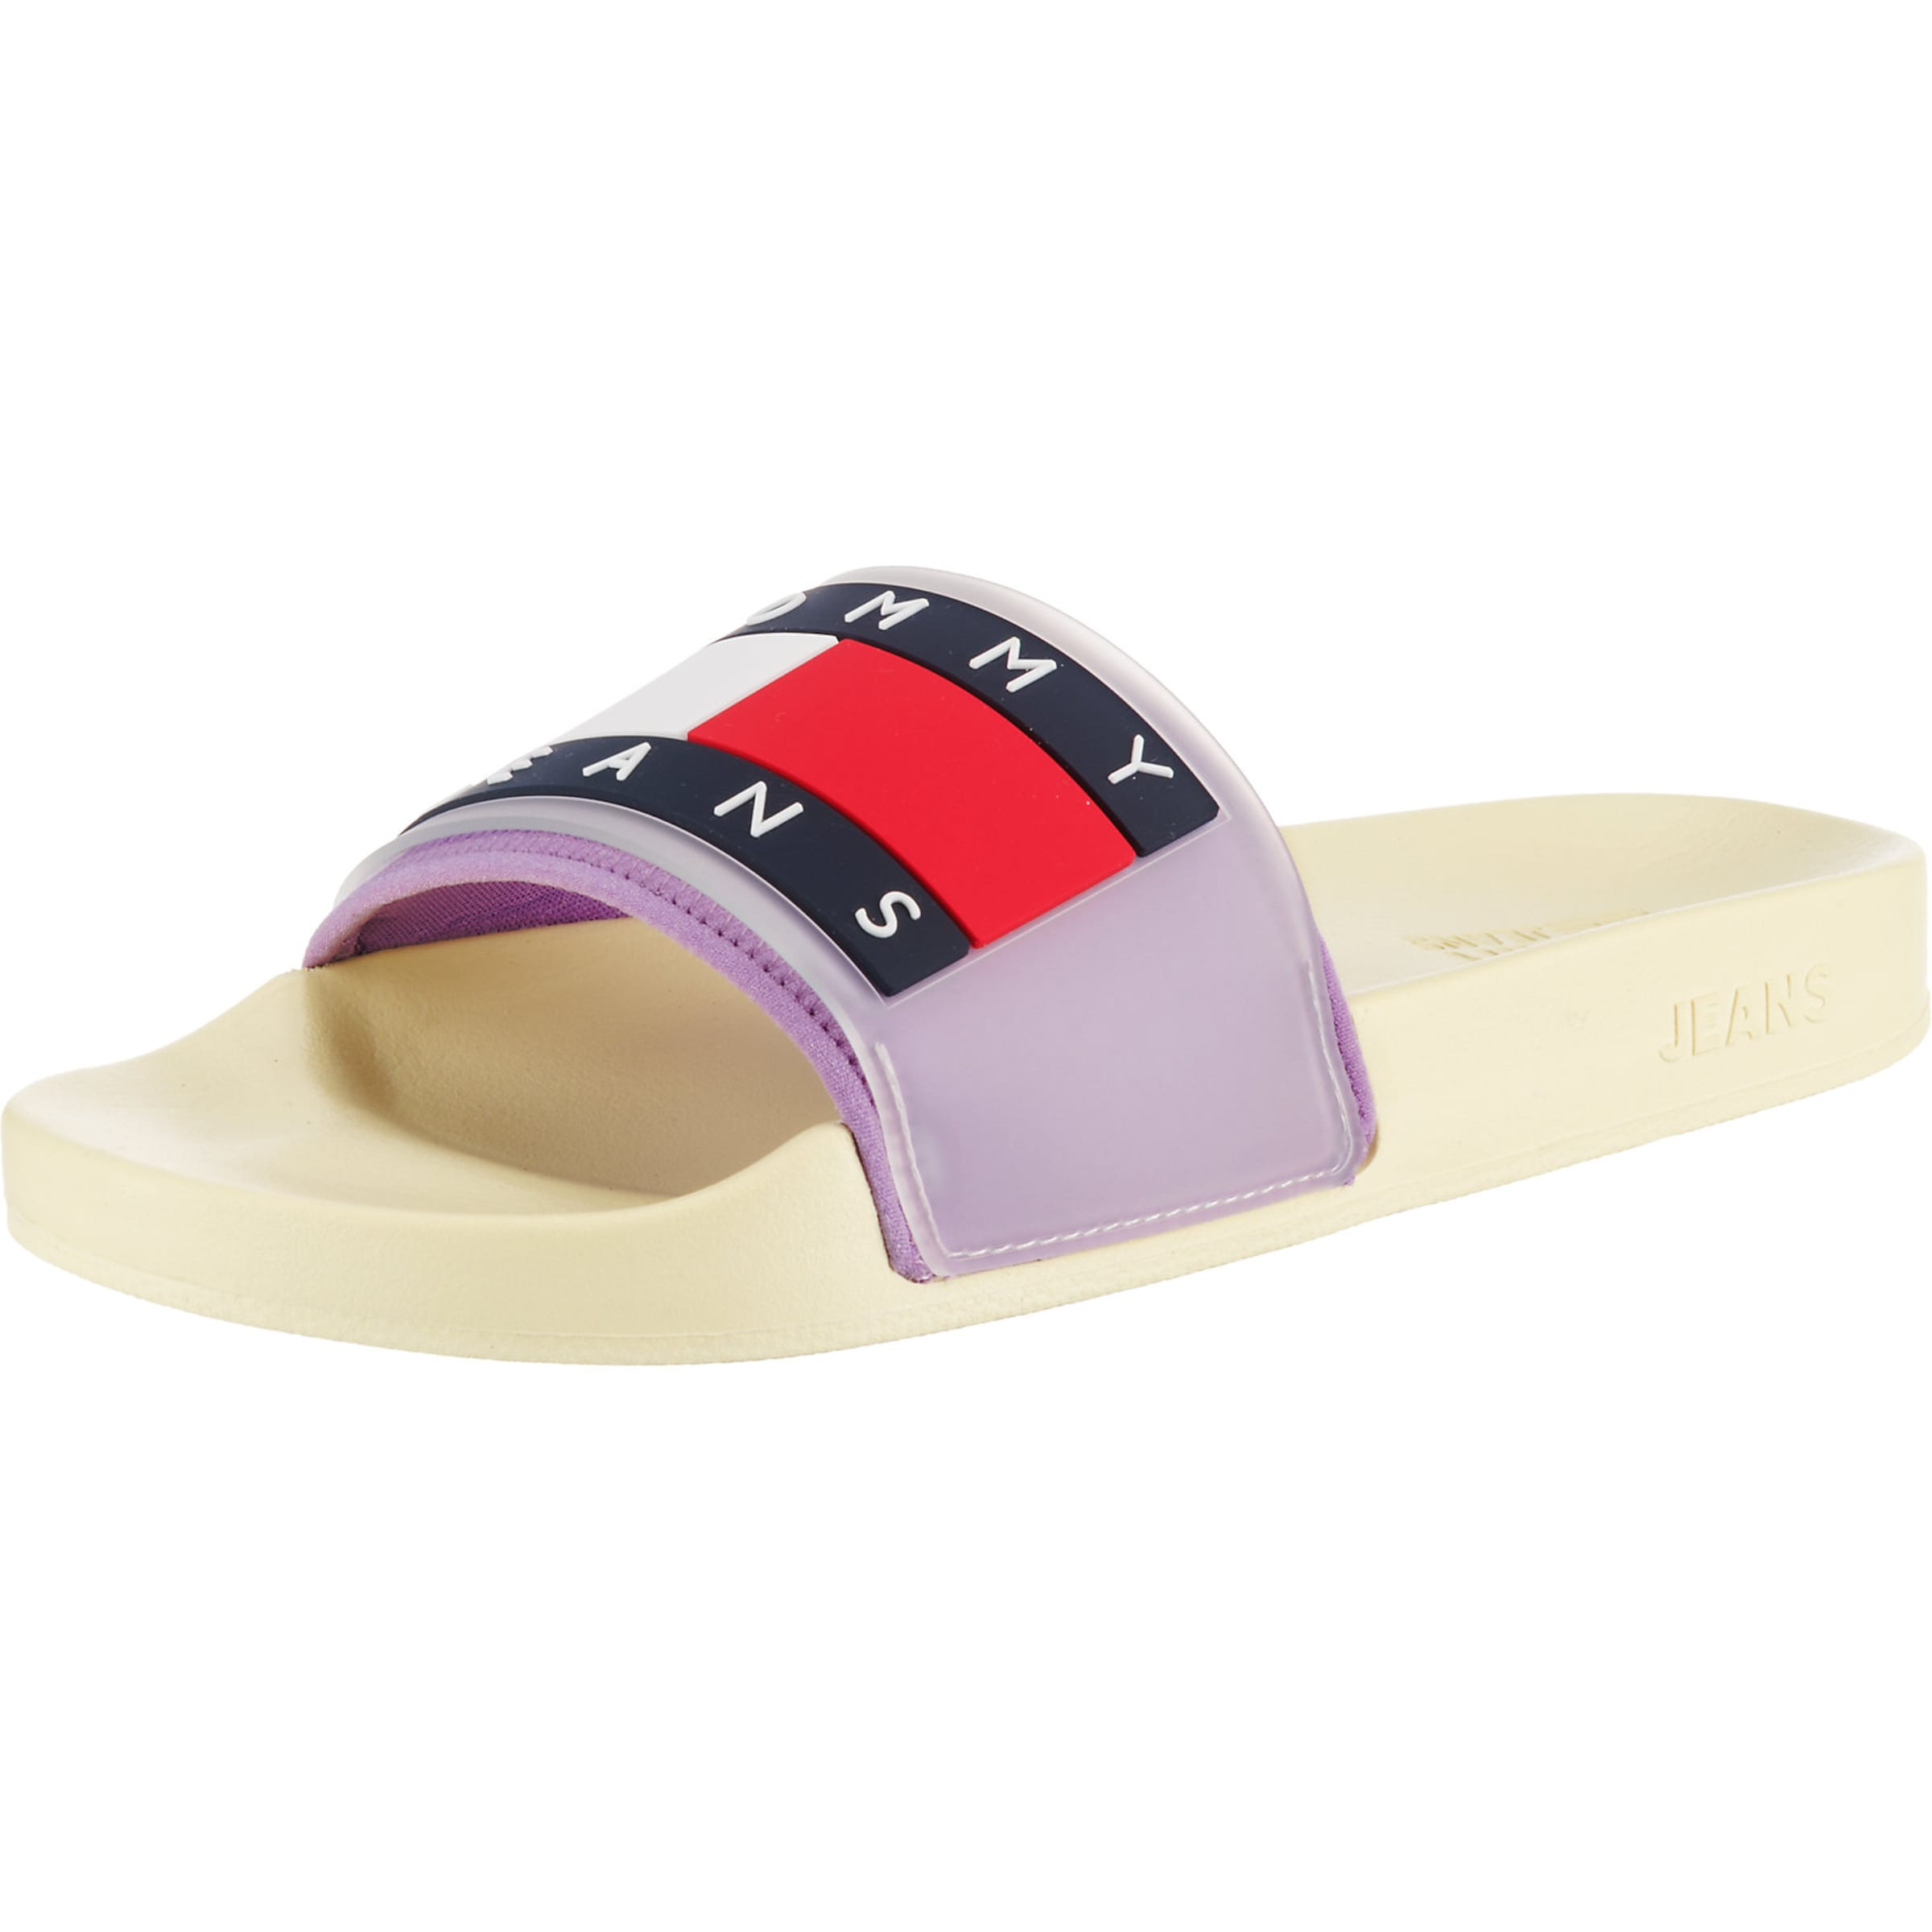 'translucent Pool Slide' Jeans Slipper In Flag GelbHelllila Tommy FTl1KJ3c